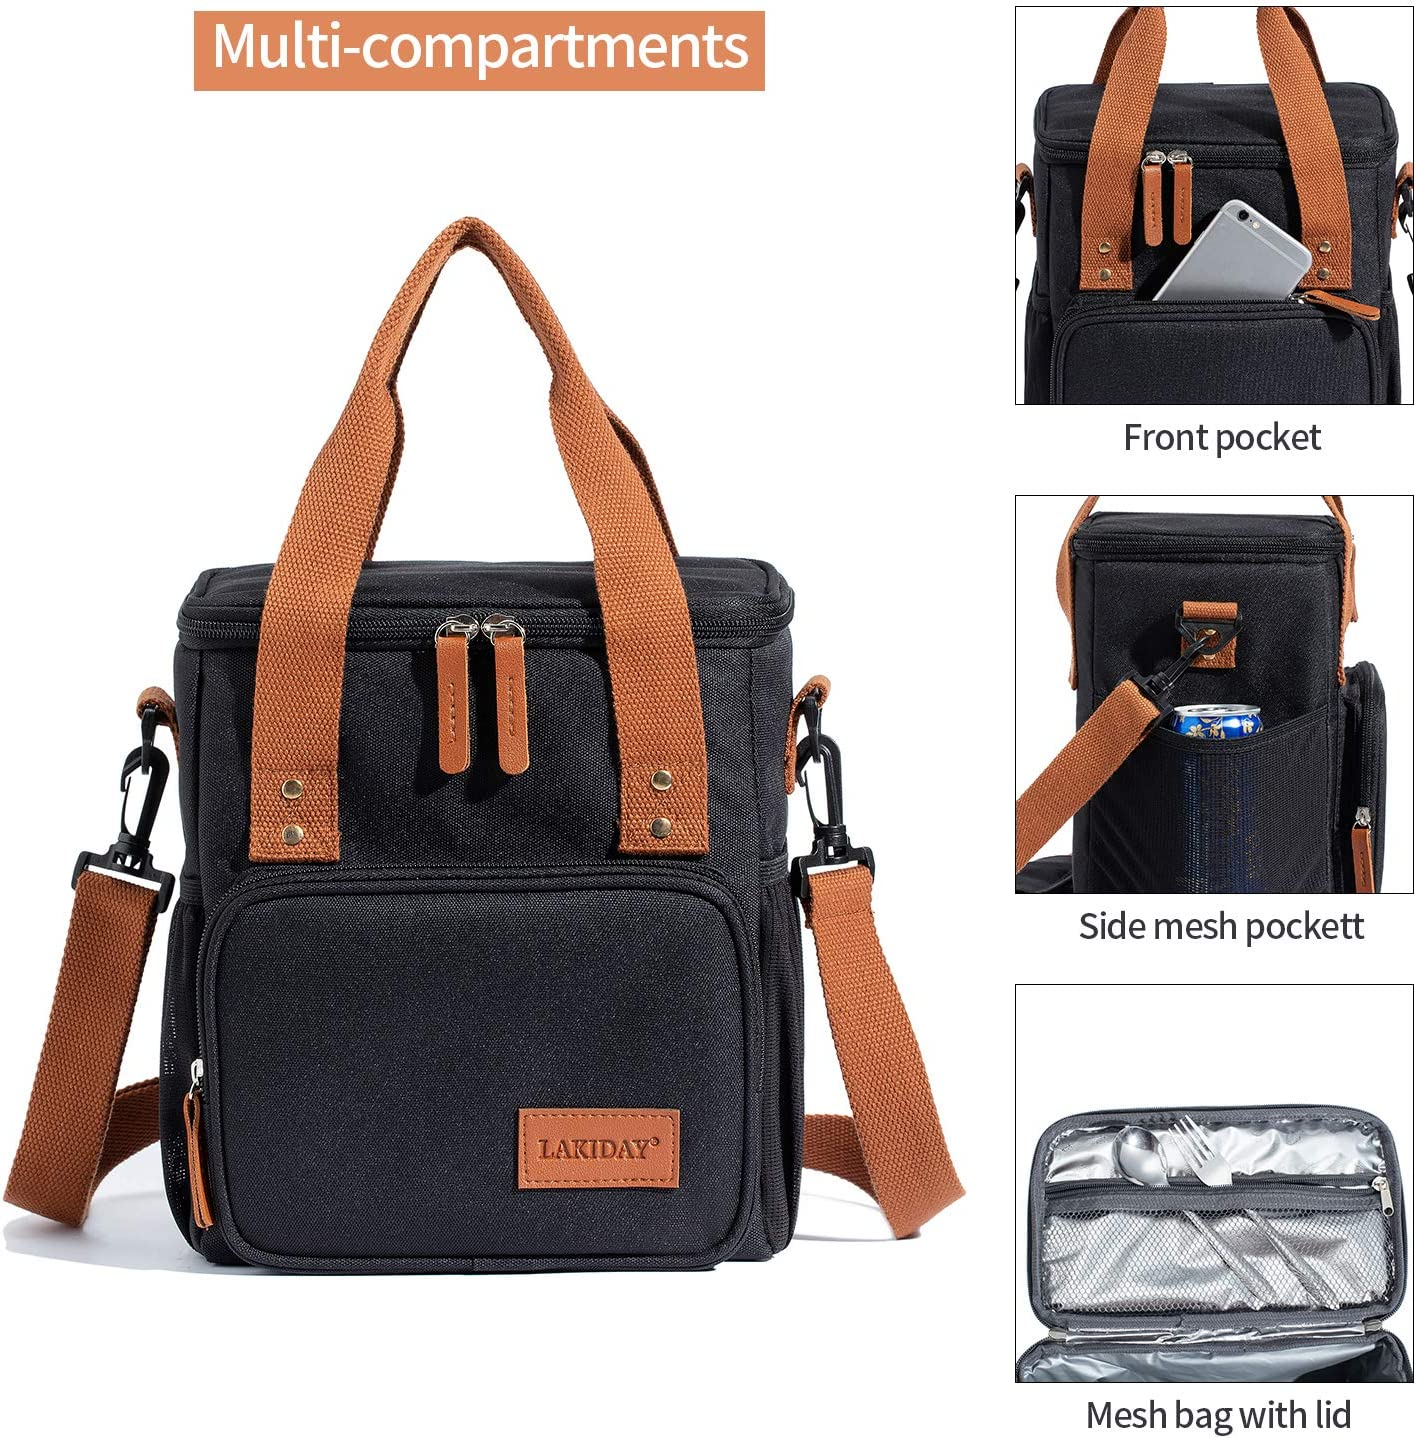 LAKIDAY Insulated Lunch Bag for Women//Men//Kids Reusable Lunch Tote Box Container with Adjustable Shoulder Strap Leakproof for Work//Picnic//Hiking//Beach//Fishing Dark Gray-2